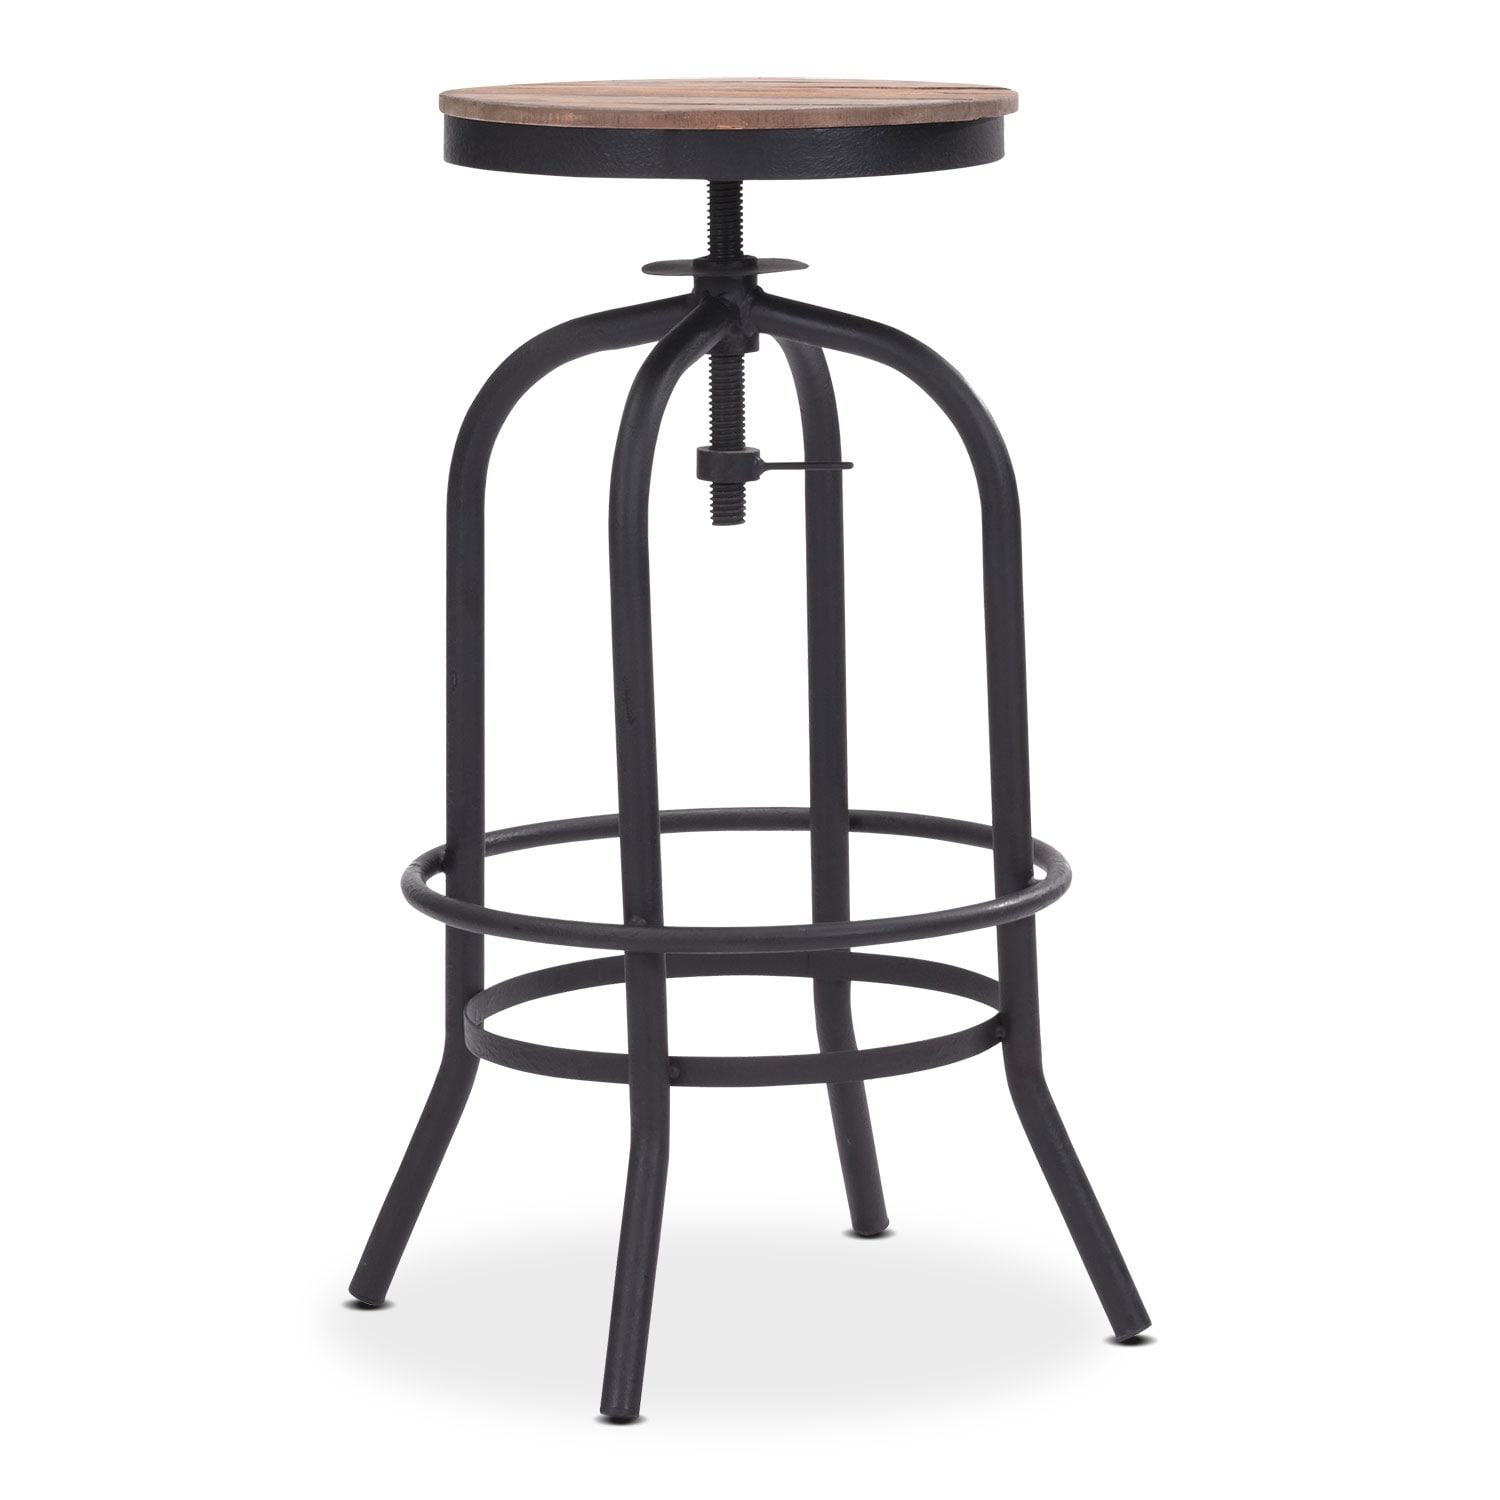 Elston Adjustable Backless Barstool - Antiqued Black